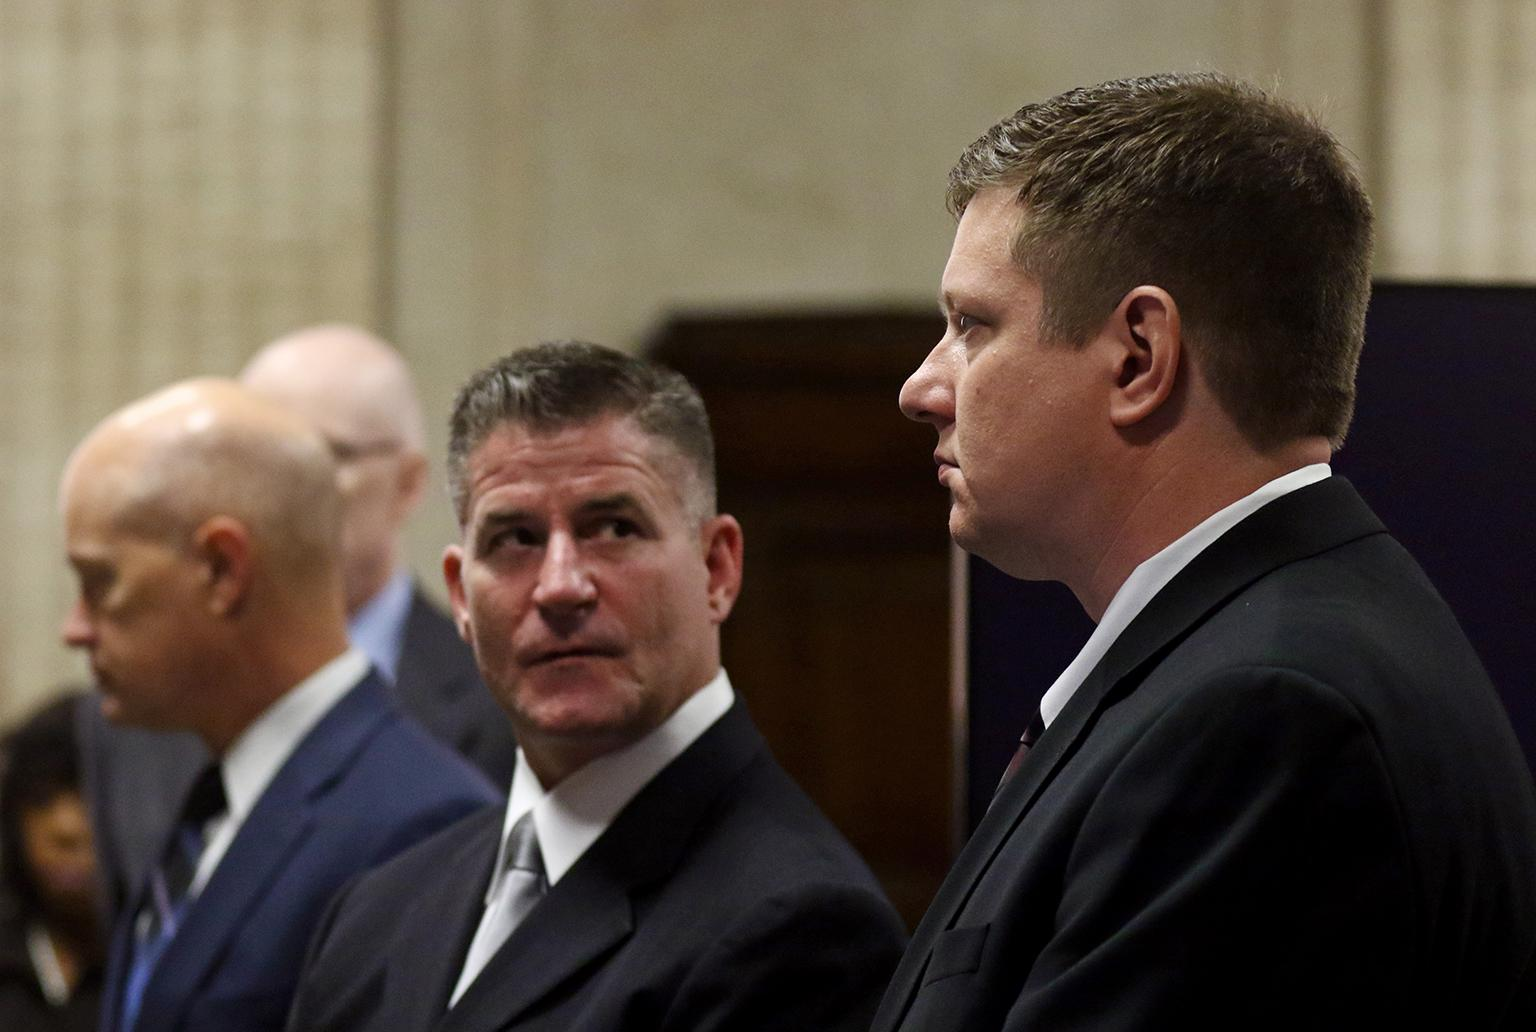 Defense attorney Dan Herbert, center, looks at his client, Chicago police Officer Jason Van Dyke, Wednesday, Sept. 26, 2018 during the trial. (John J. Kim / Chicago Tribune / Pool)